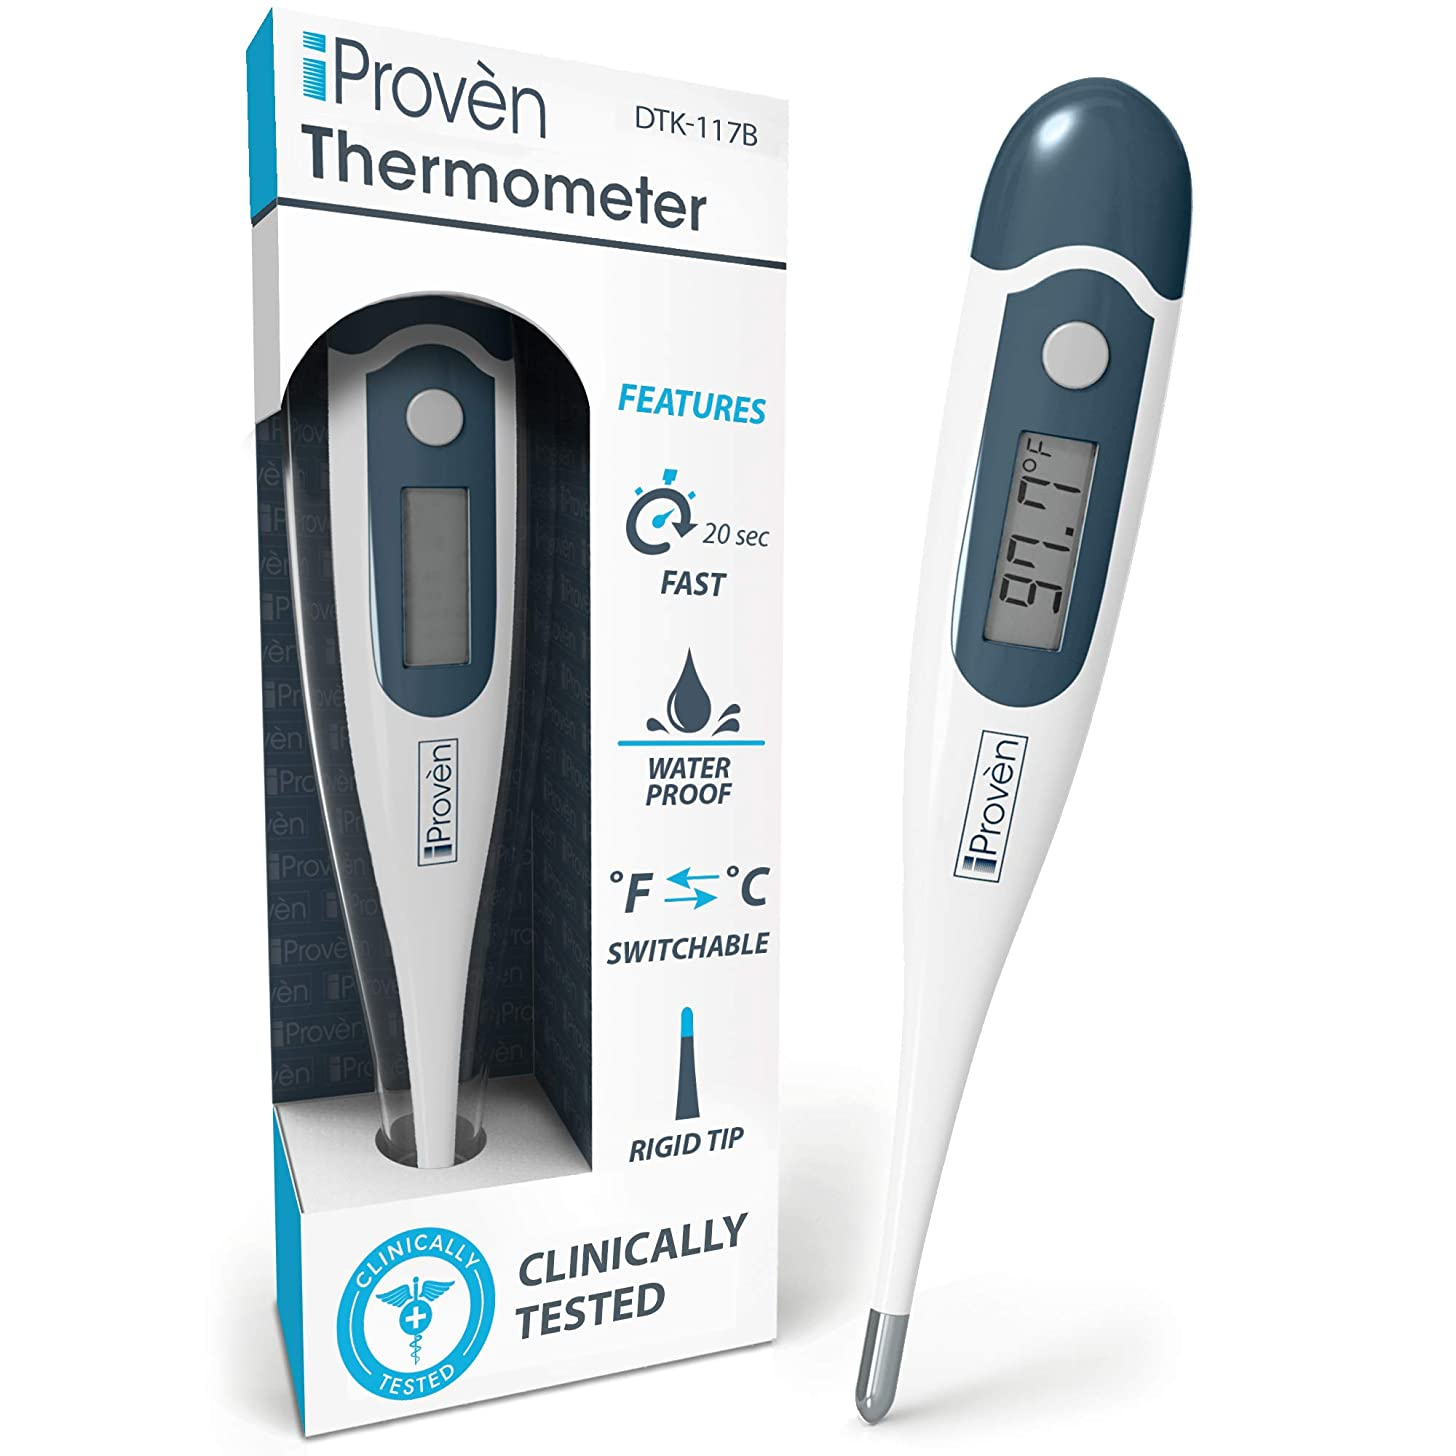 [New Version] iProvèn's Digital Oral Thermometer for Fever - Highly Accurate & Fast Readings - with Fever Alarm & Waterproof - iProvèn's DTK-117B